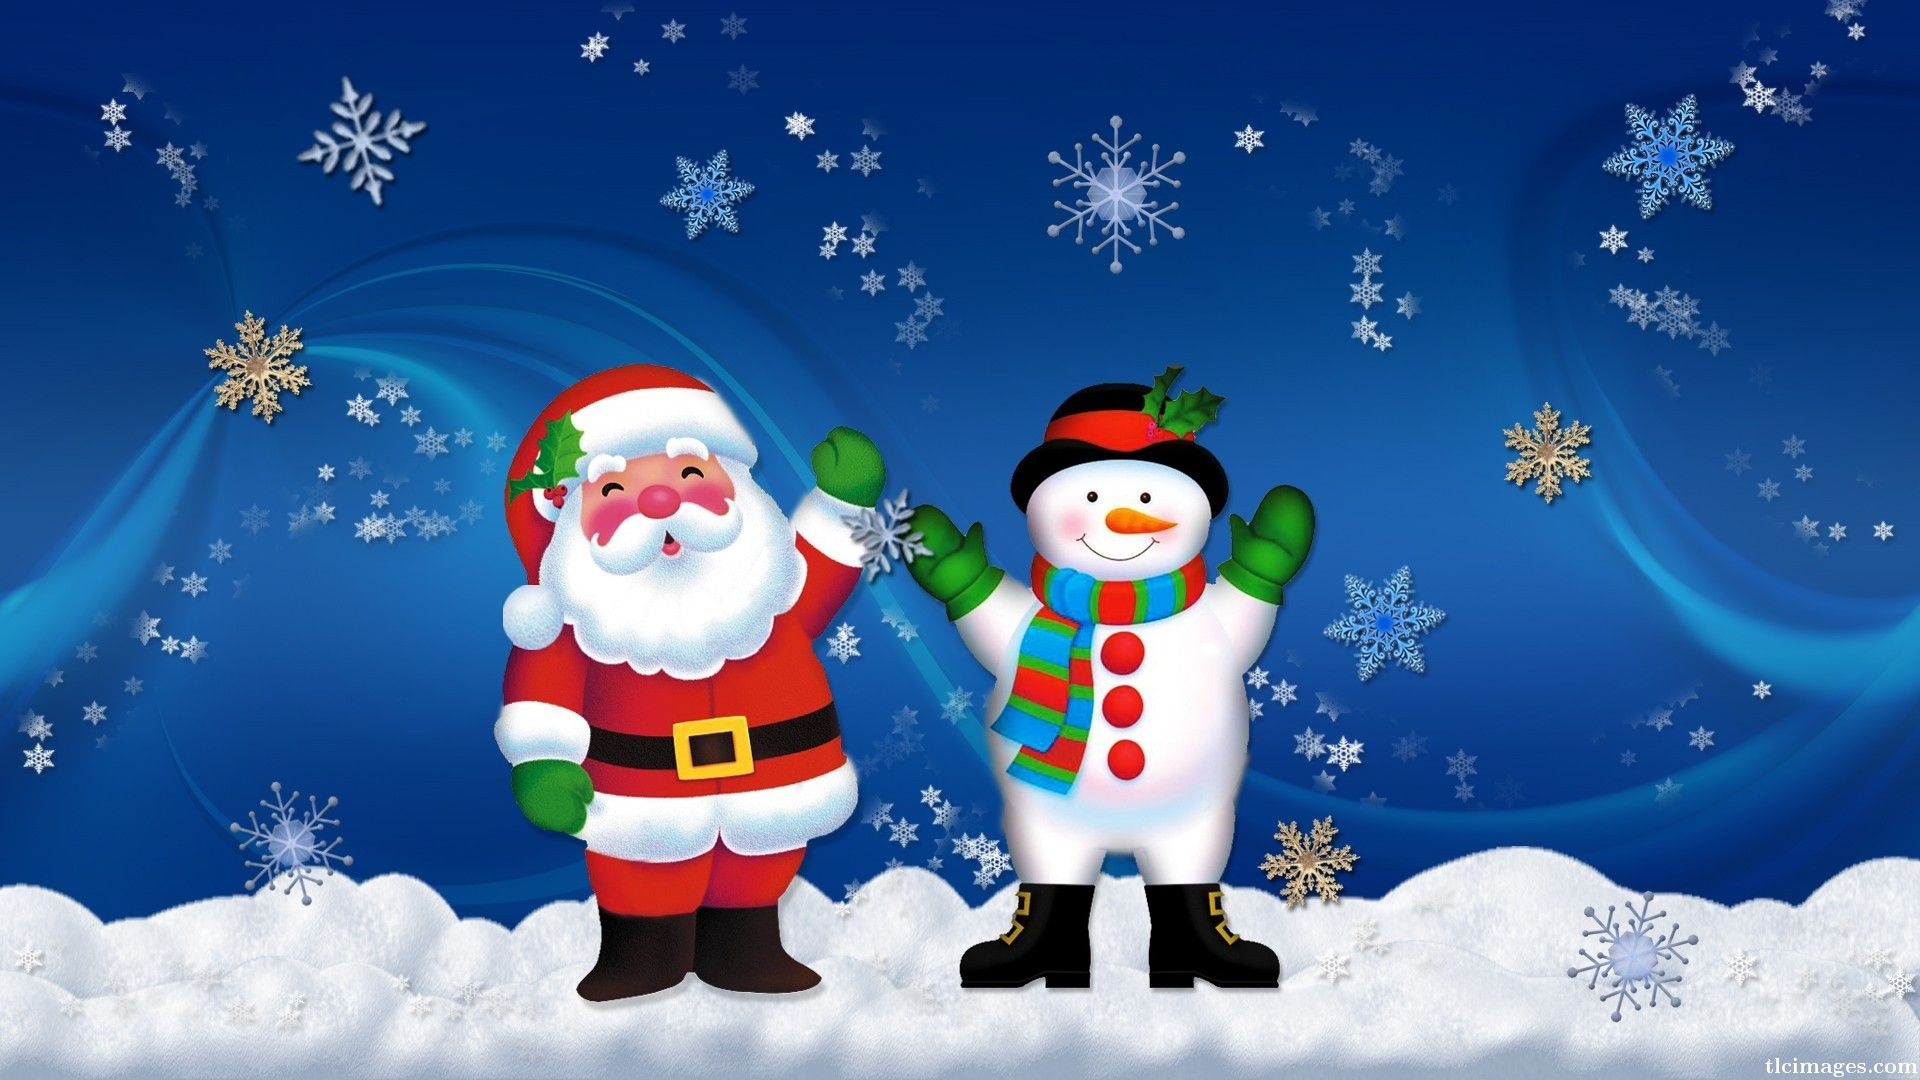 Merry Christmas Background HD Wallpapers #Christmas ...